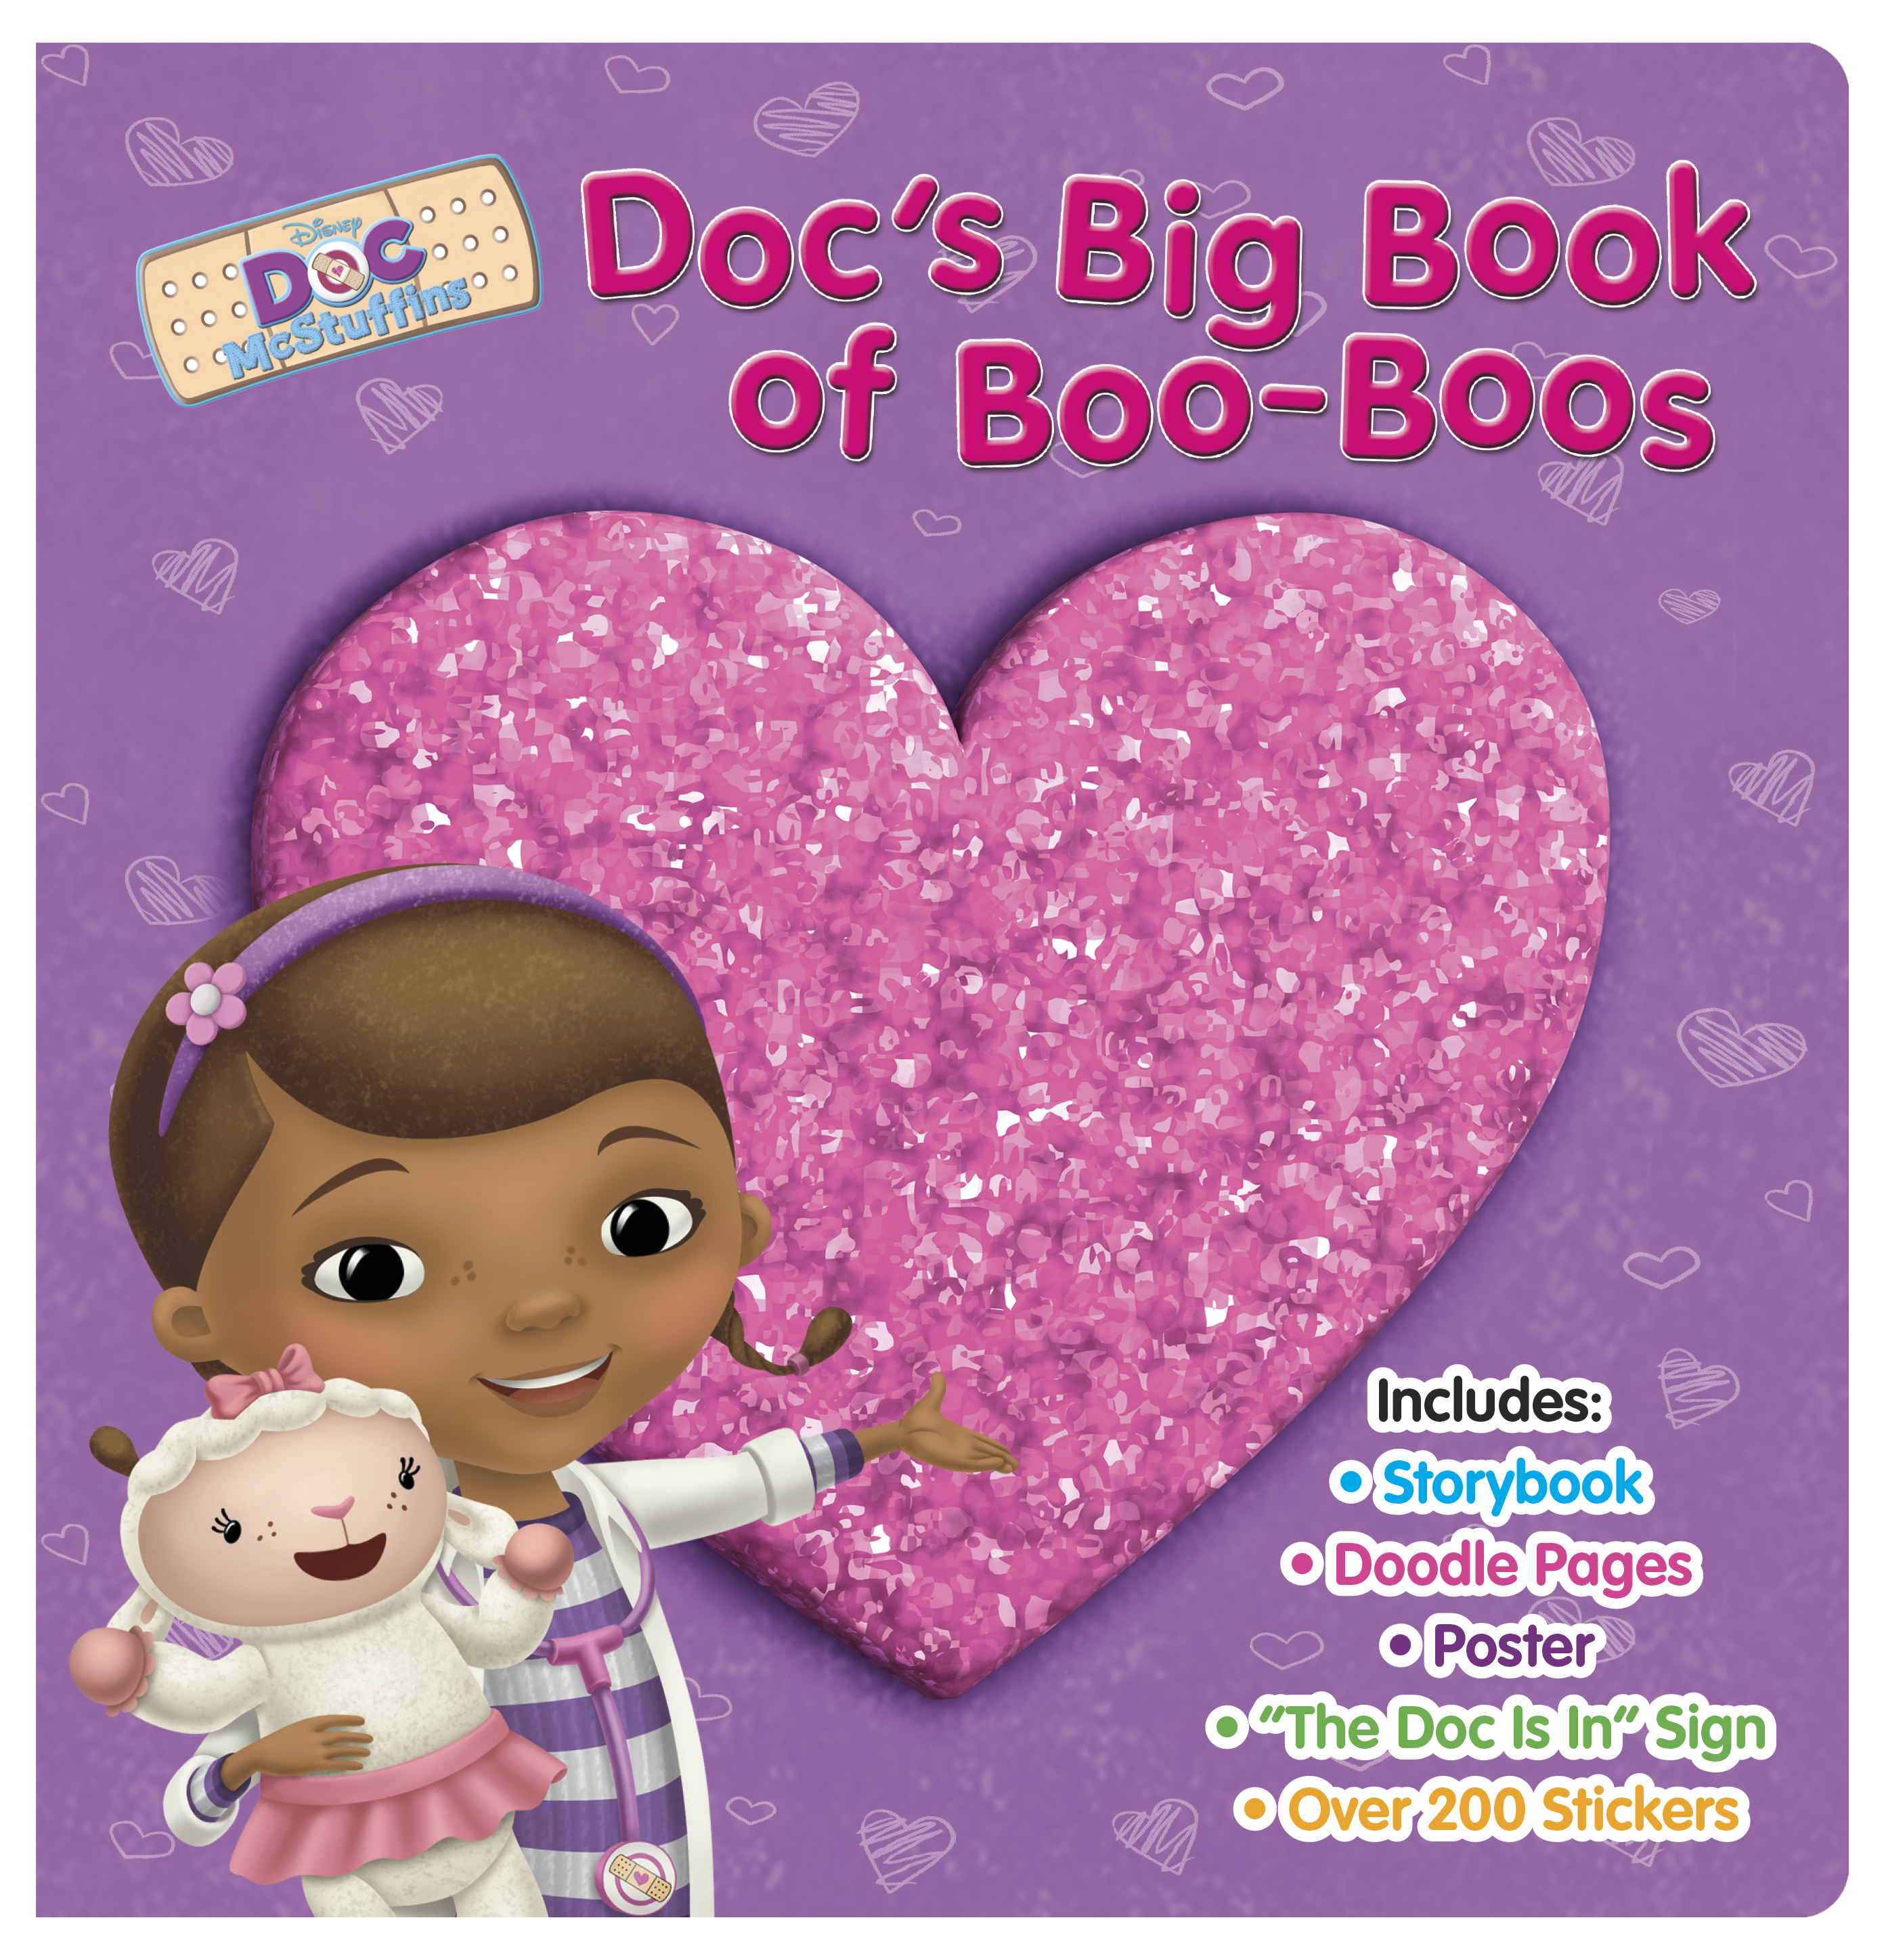 Doc's Big Book of Boo-Boos